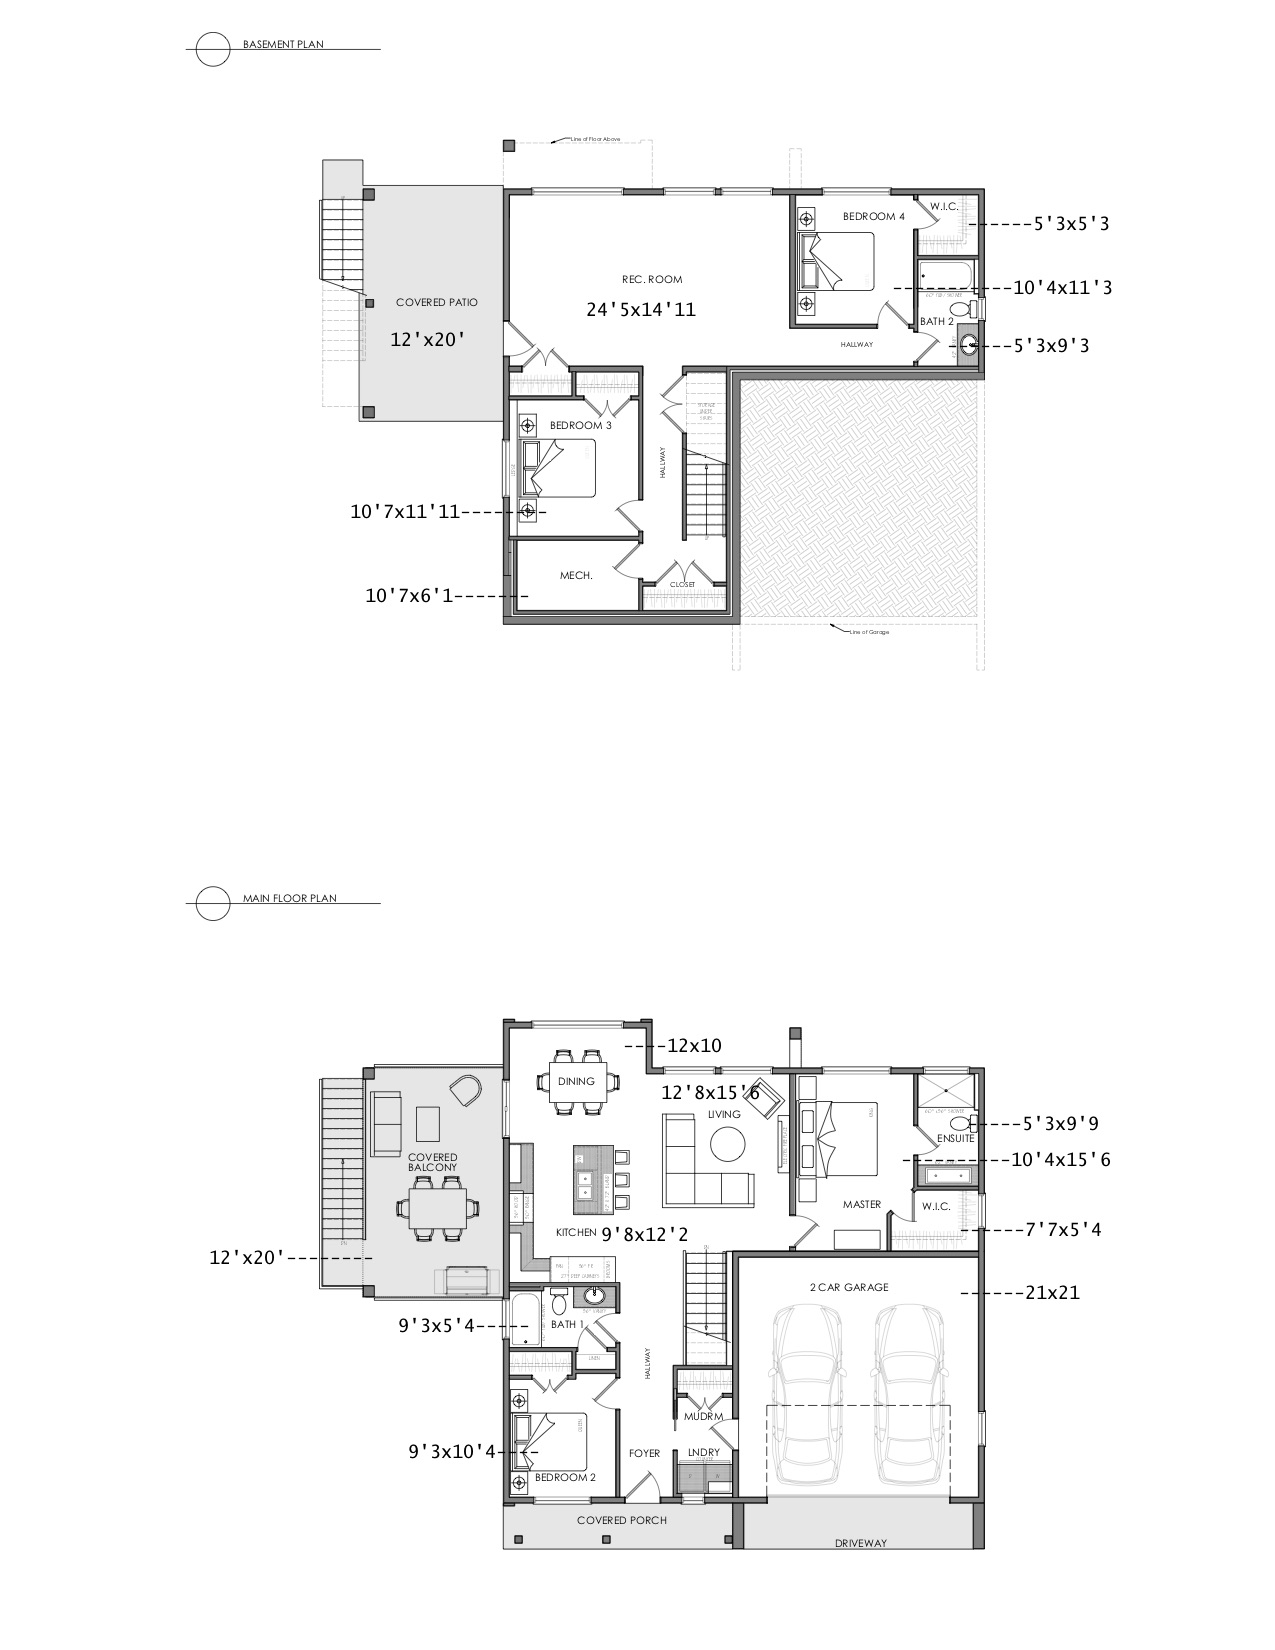 LOT 29 Valley Drive - SALES PLANS with